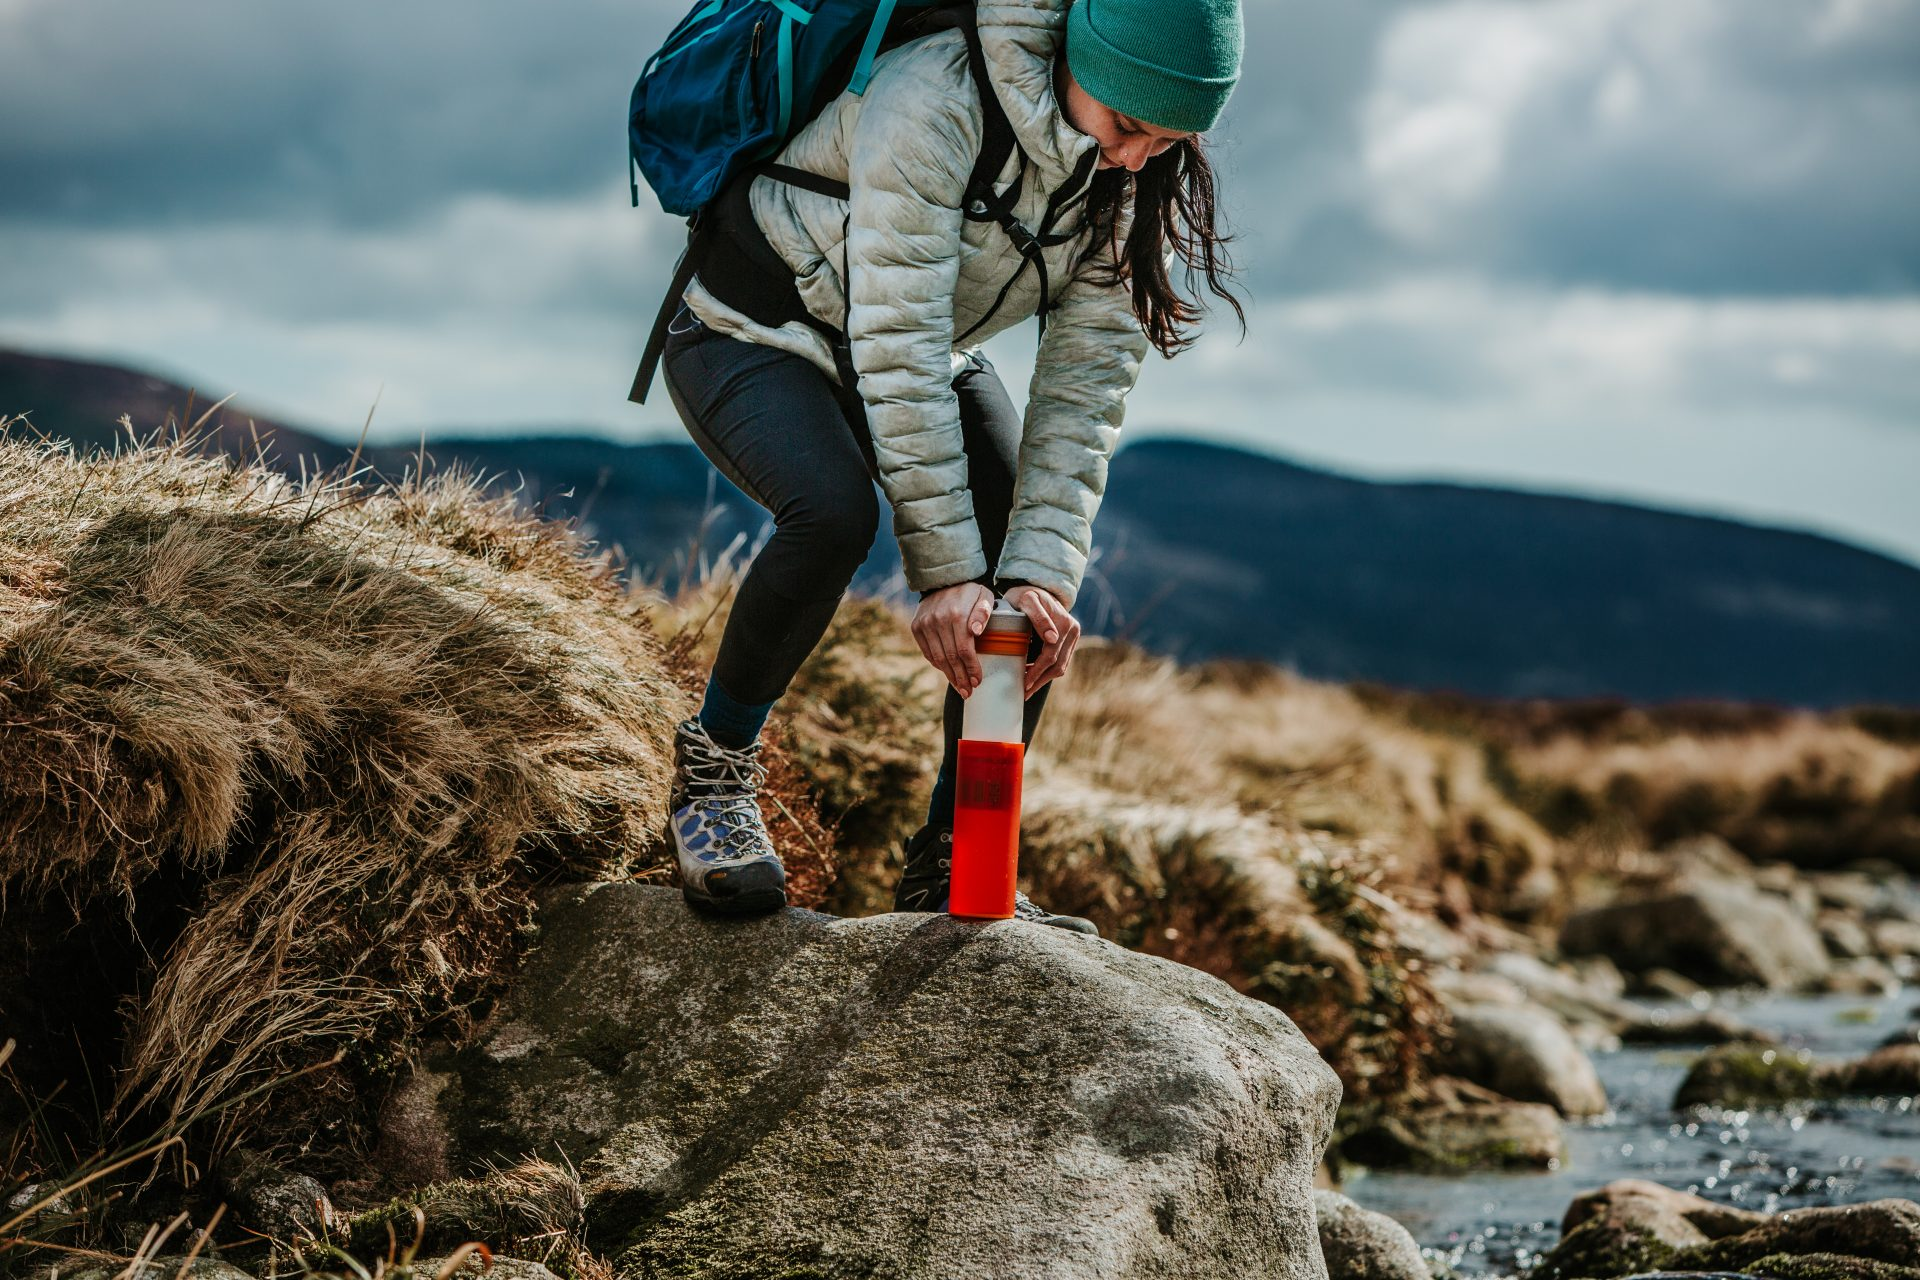 Woman in outdoor gear pressing down on a water bottle to filter the water